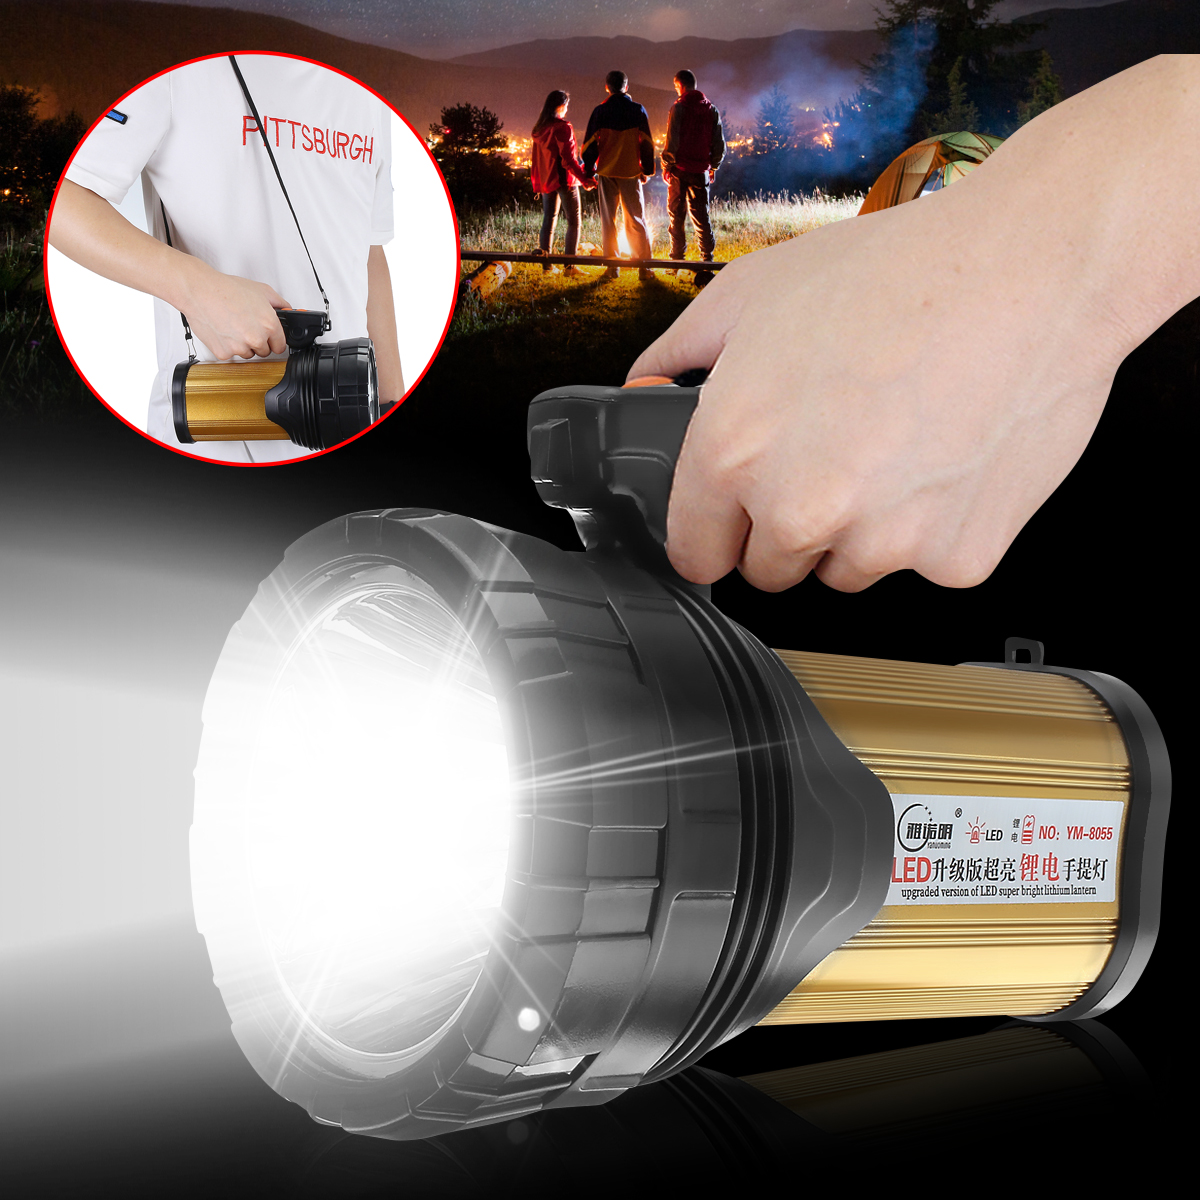 120W LED Portable Spotlight Lantern Searchlight Rechargeable Handheld High Power Portable Light for Outdoor Camping high power portable spotlight lantern searchlight rechargeable waterproof hunting spotlight built in battery